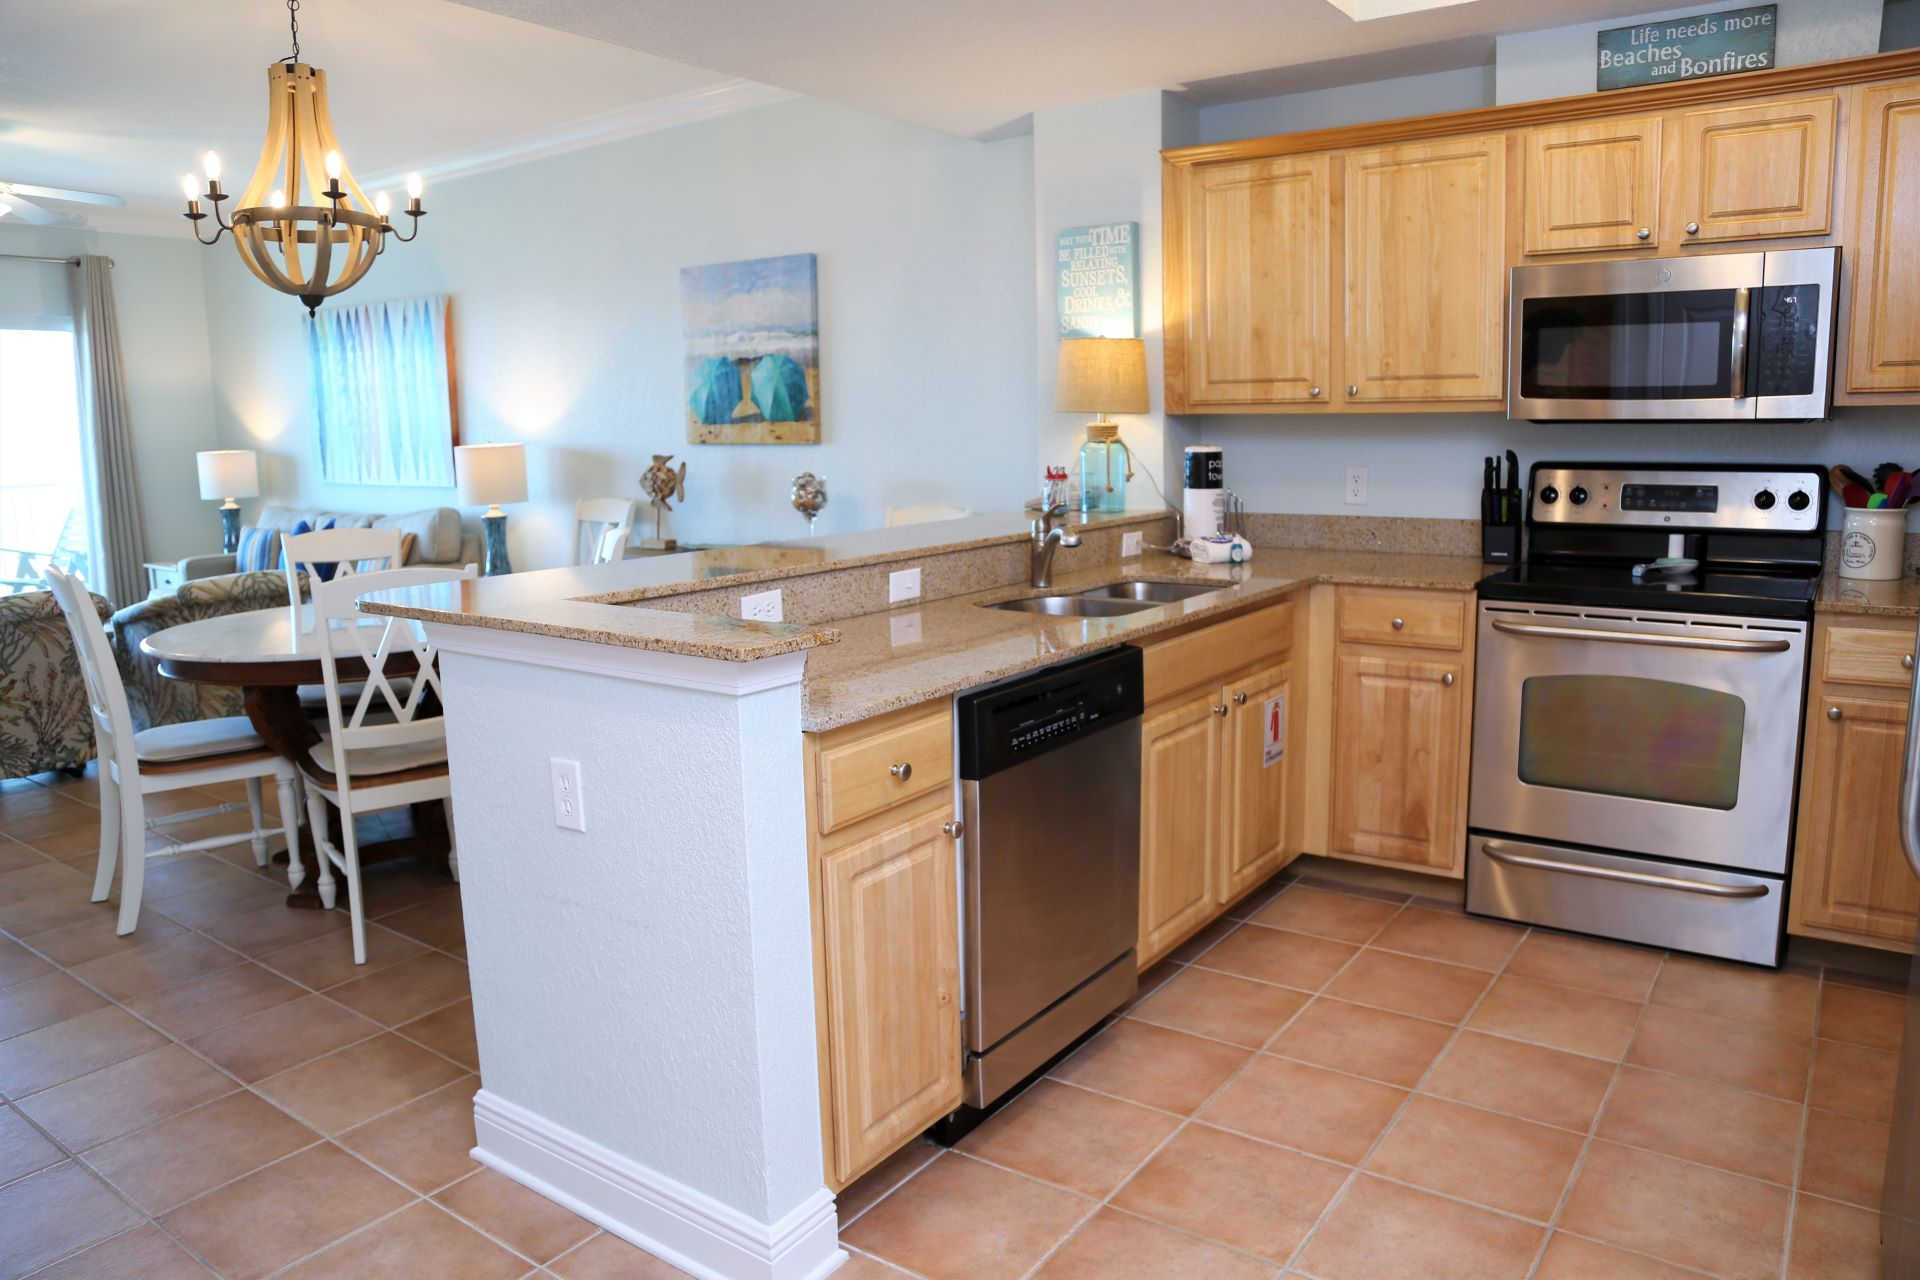 The granite counters provide ample space for prepping home-c